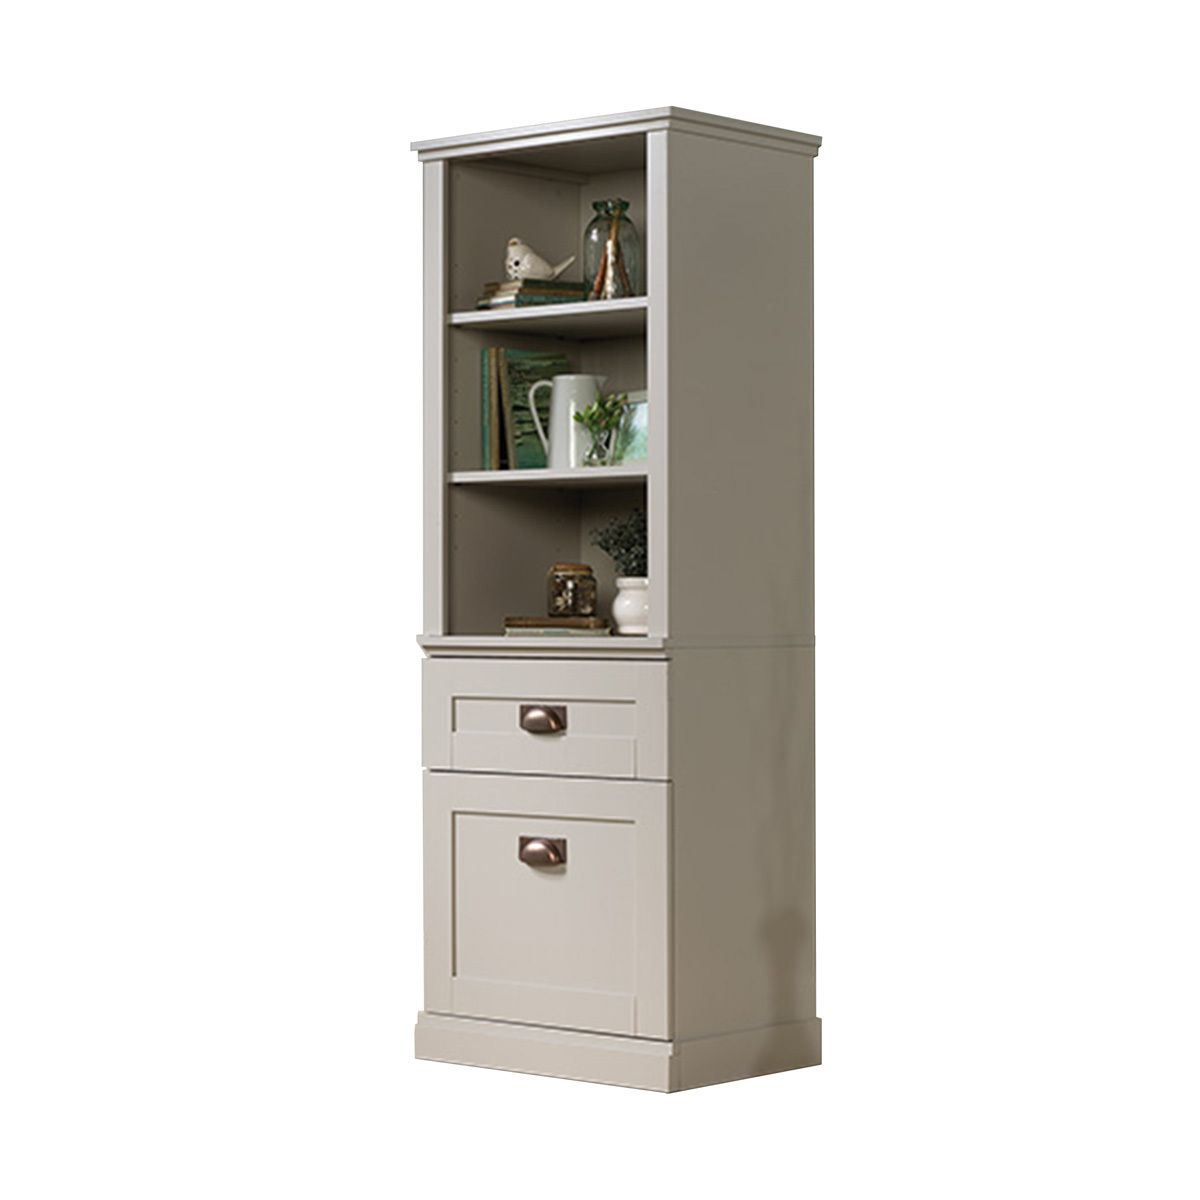 Sauder New Grange Tall Cabinet (419281) - Free Shipping ...